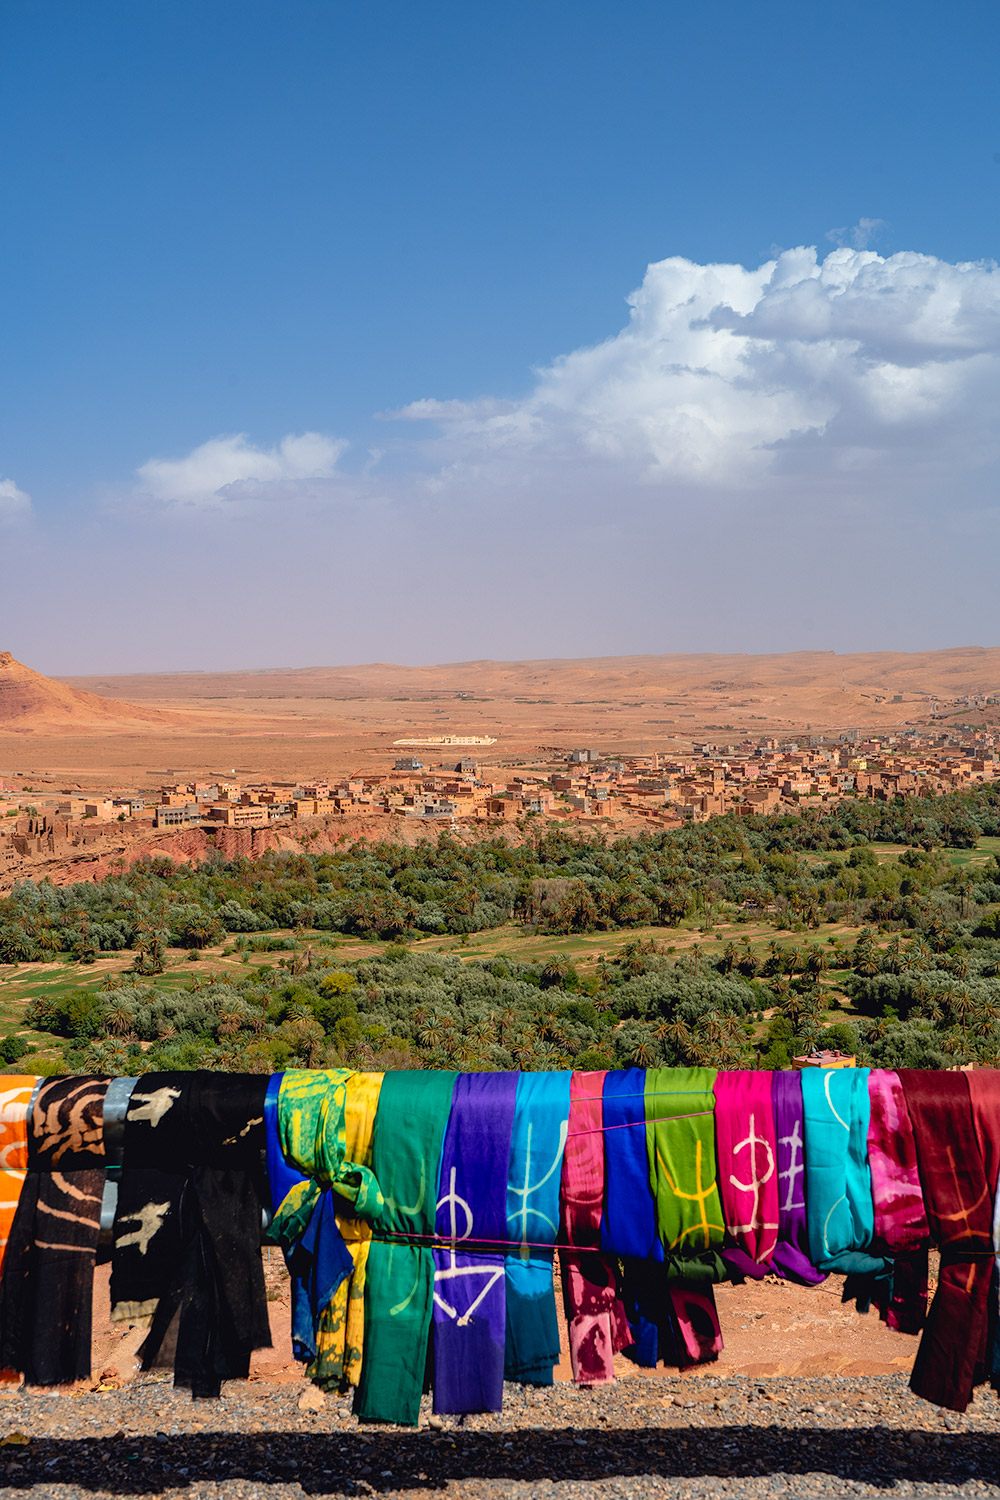 Views along the way during our Morocco desert excursion